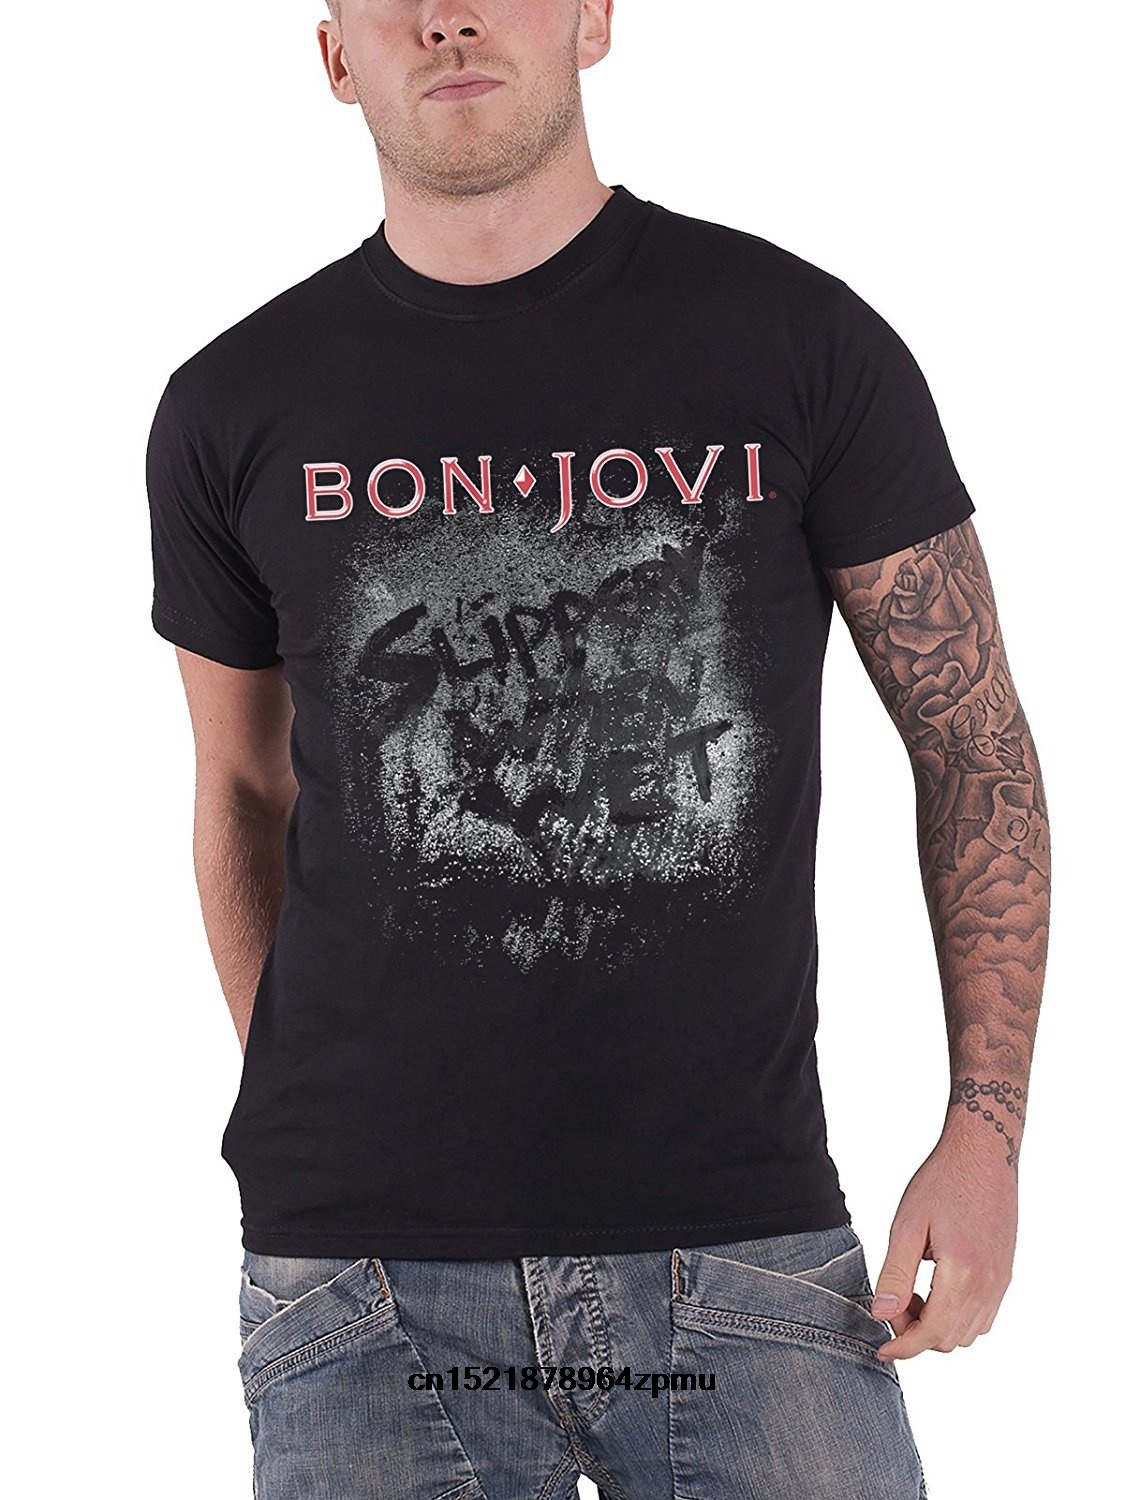 a47a06e46 Men t shirt Custom Summer Fashion Bon Jovi Slippery When Wet Album Band  Logo Black women